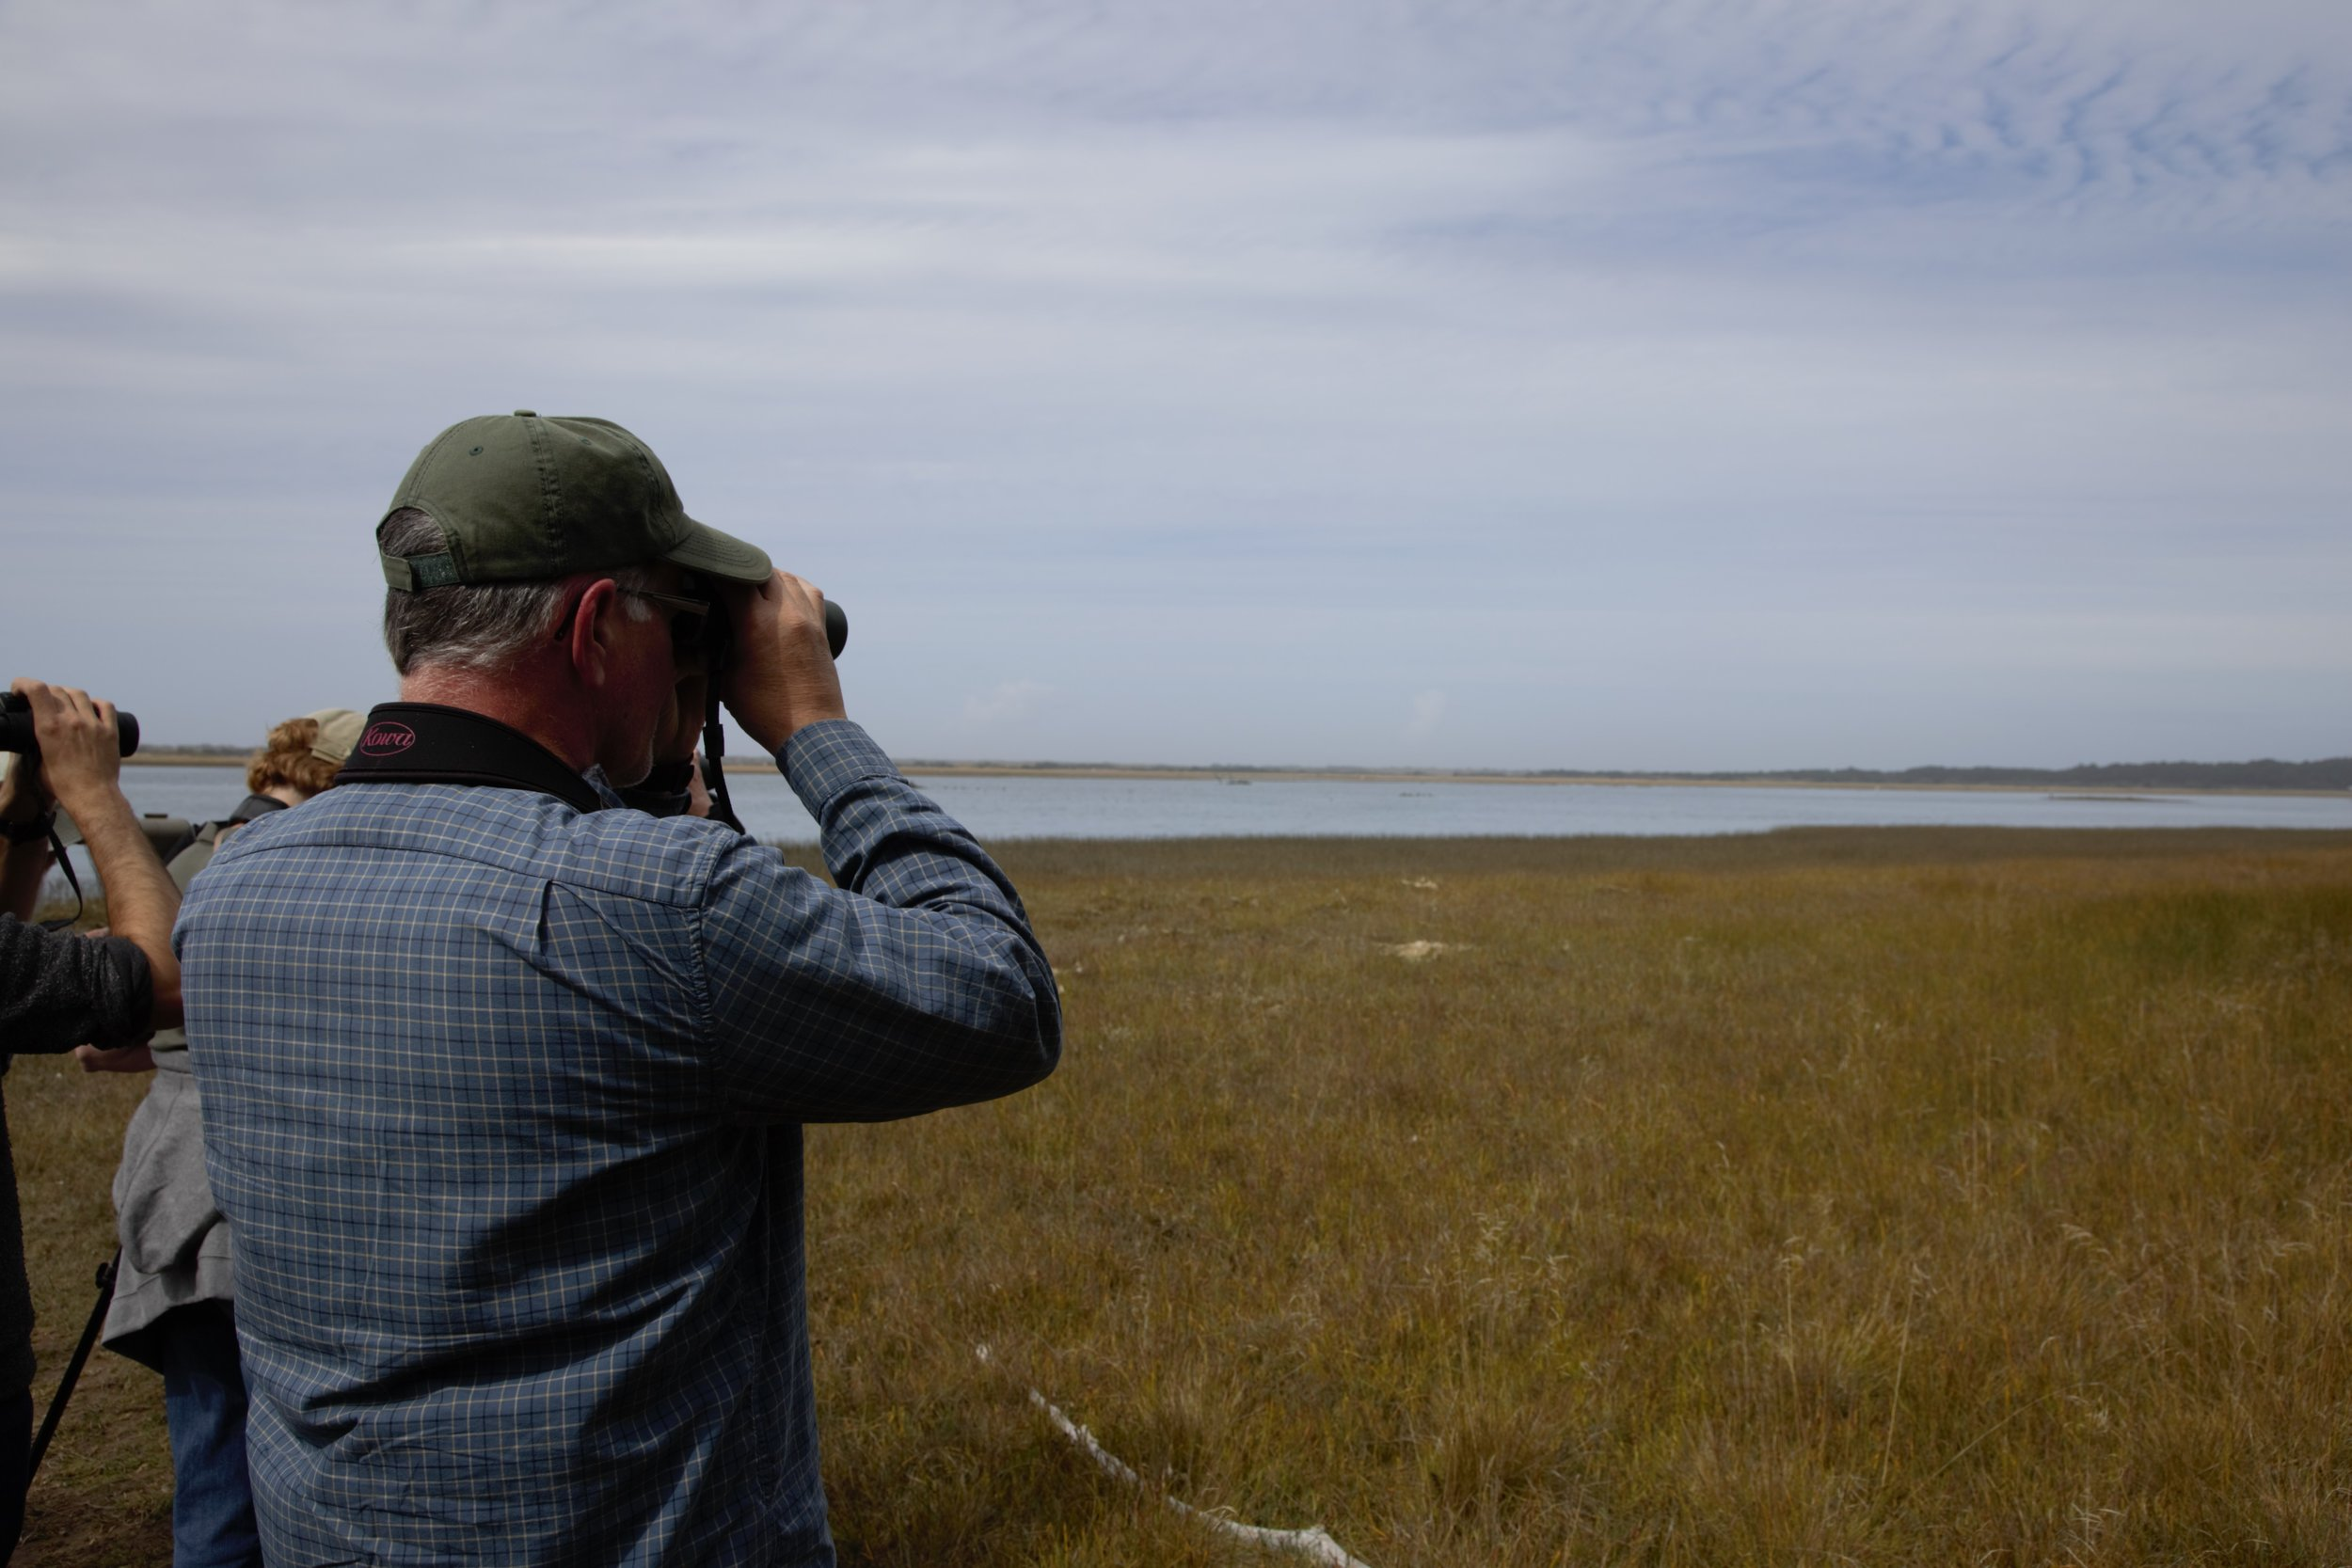 Presenter Tim Boyer spots a Peregrine Falcon in the distance at Bandon Marsh National Wildlife Refuge. Photo by Lila Bowen